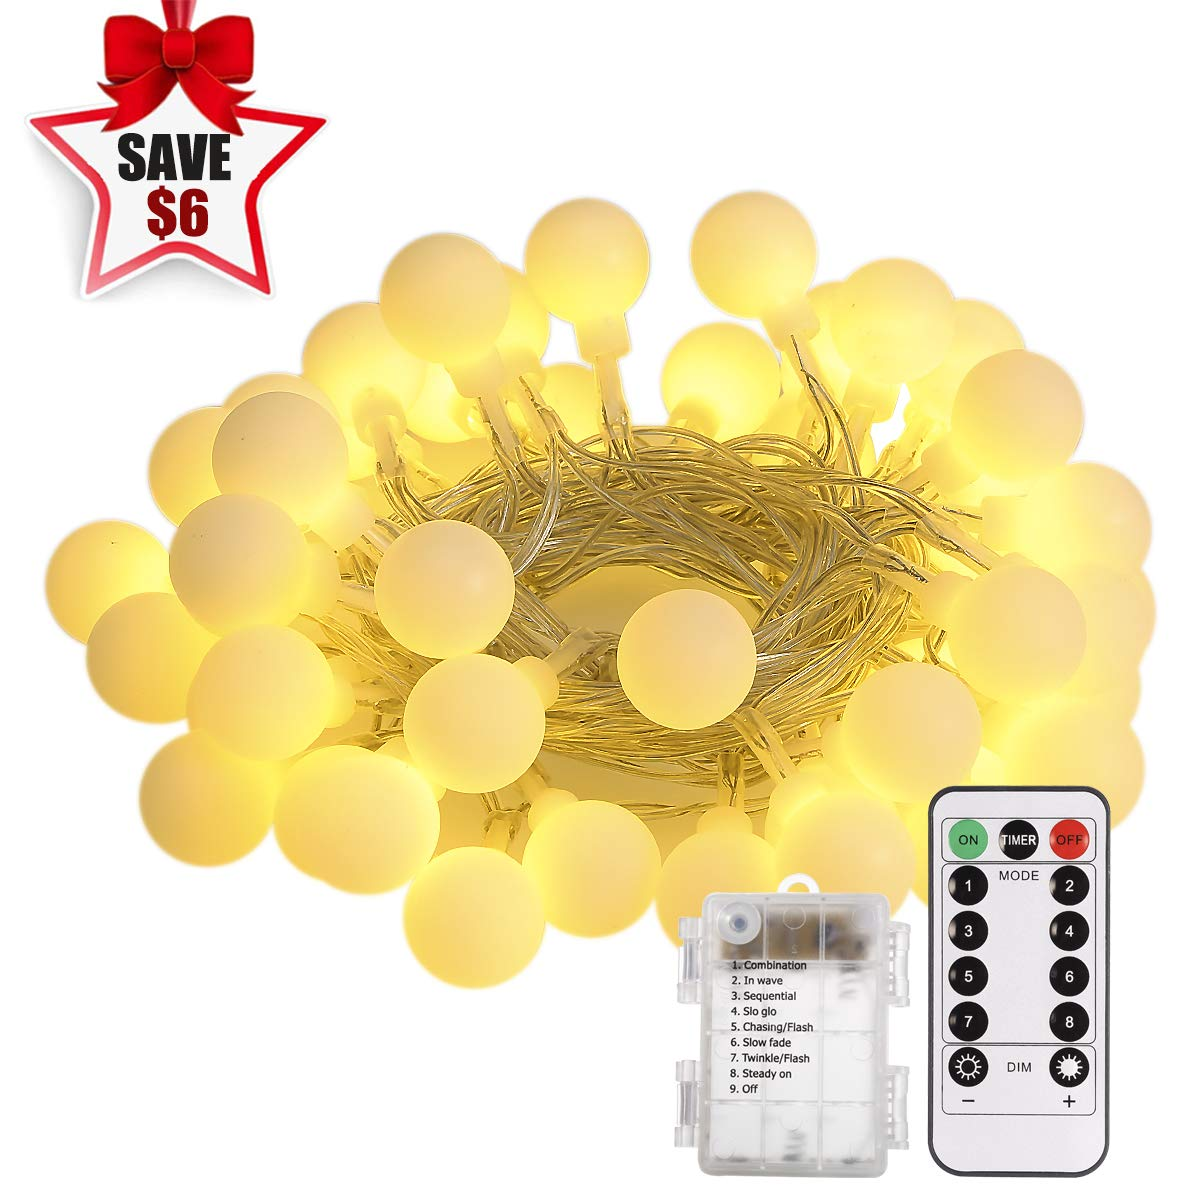 Amazon : 50 LEDs String Lights with Remote Control Just $5.60 W/Code (Reg : $13.99) (As of 12/11/2018 1.37 PM CST)